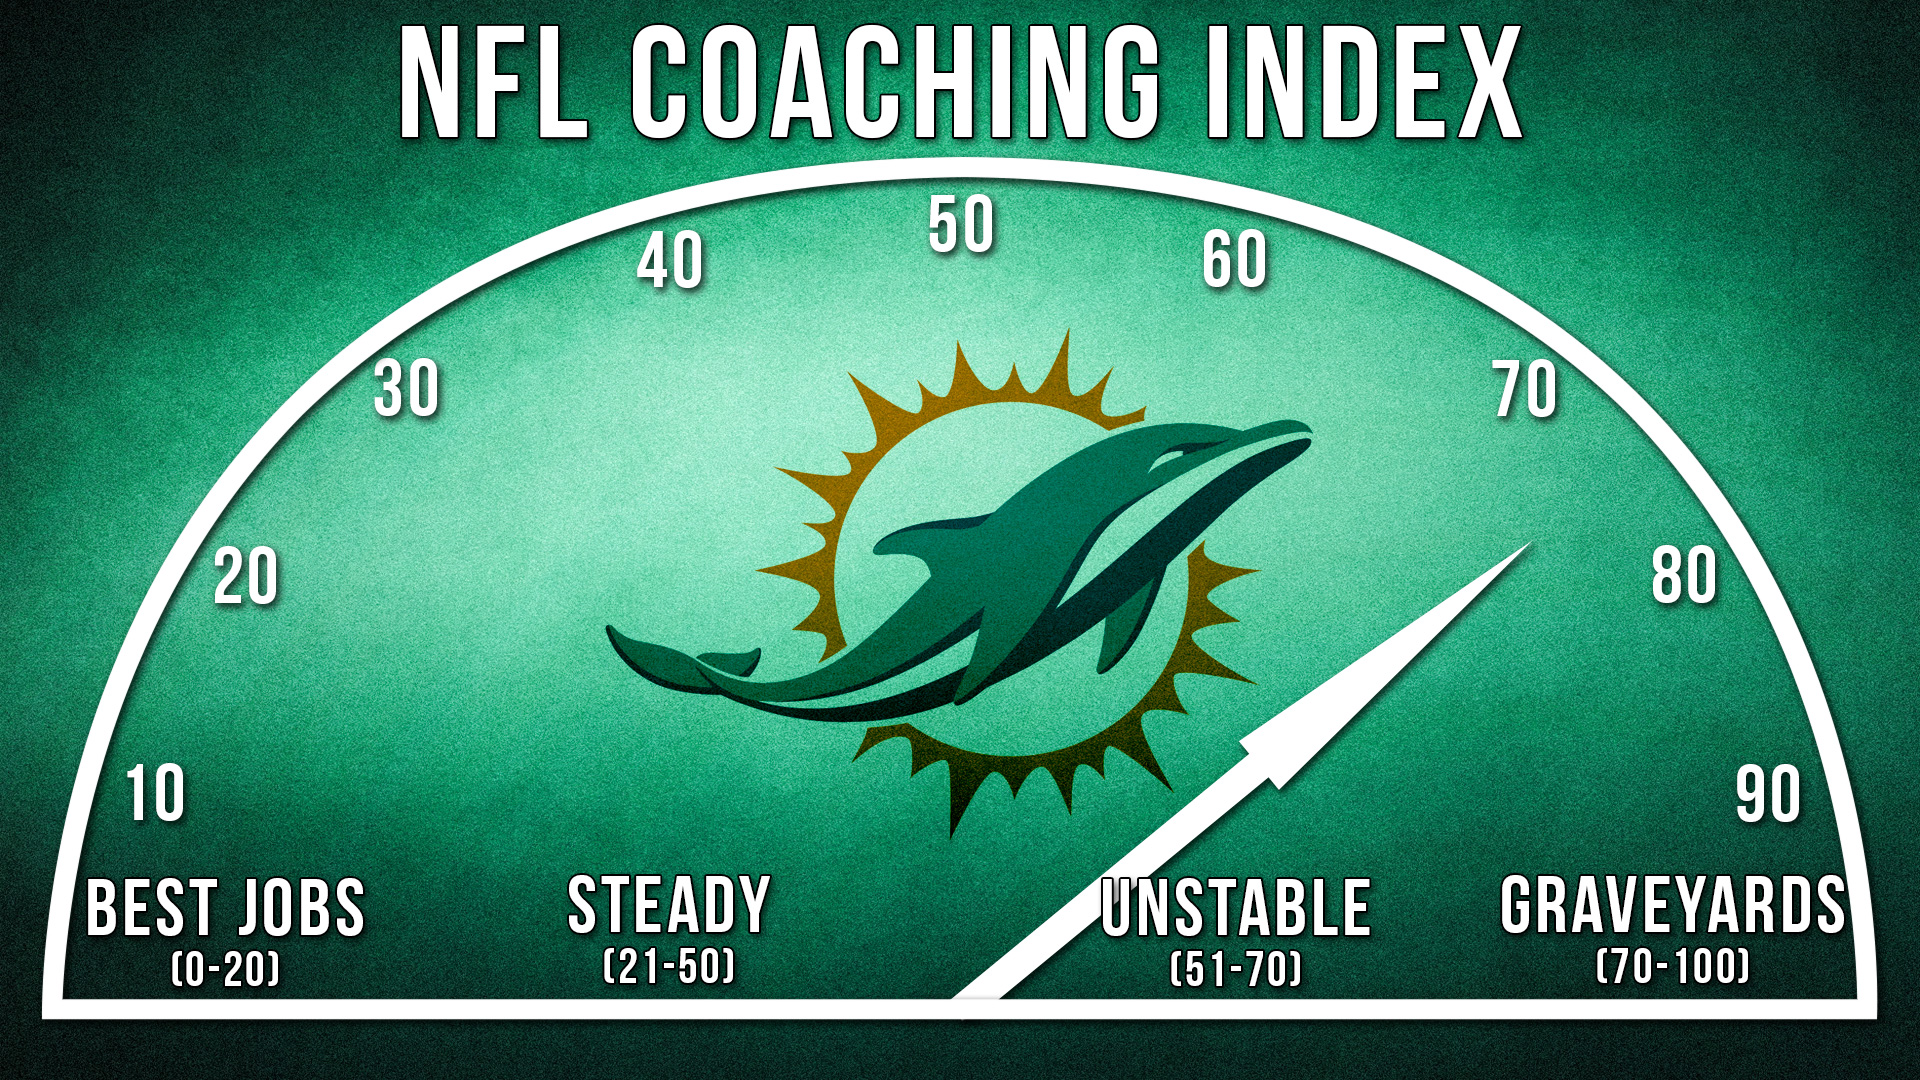 nfl coaching index best worst places to coach since 2000